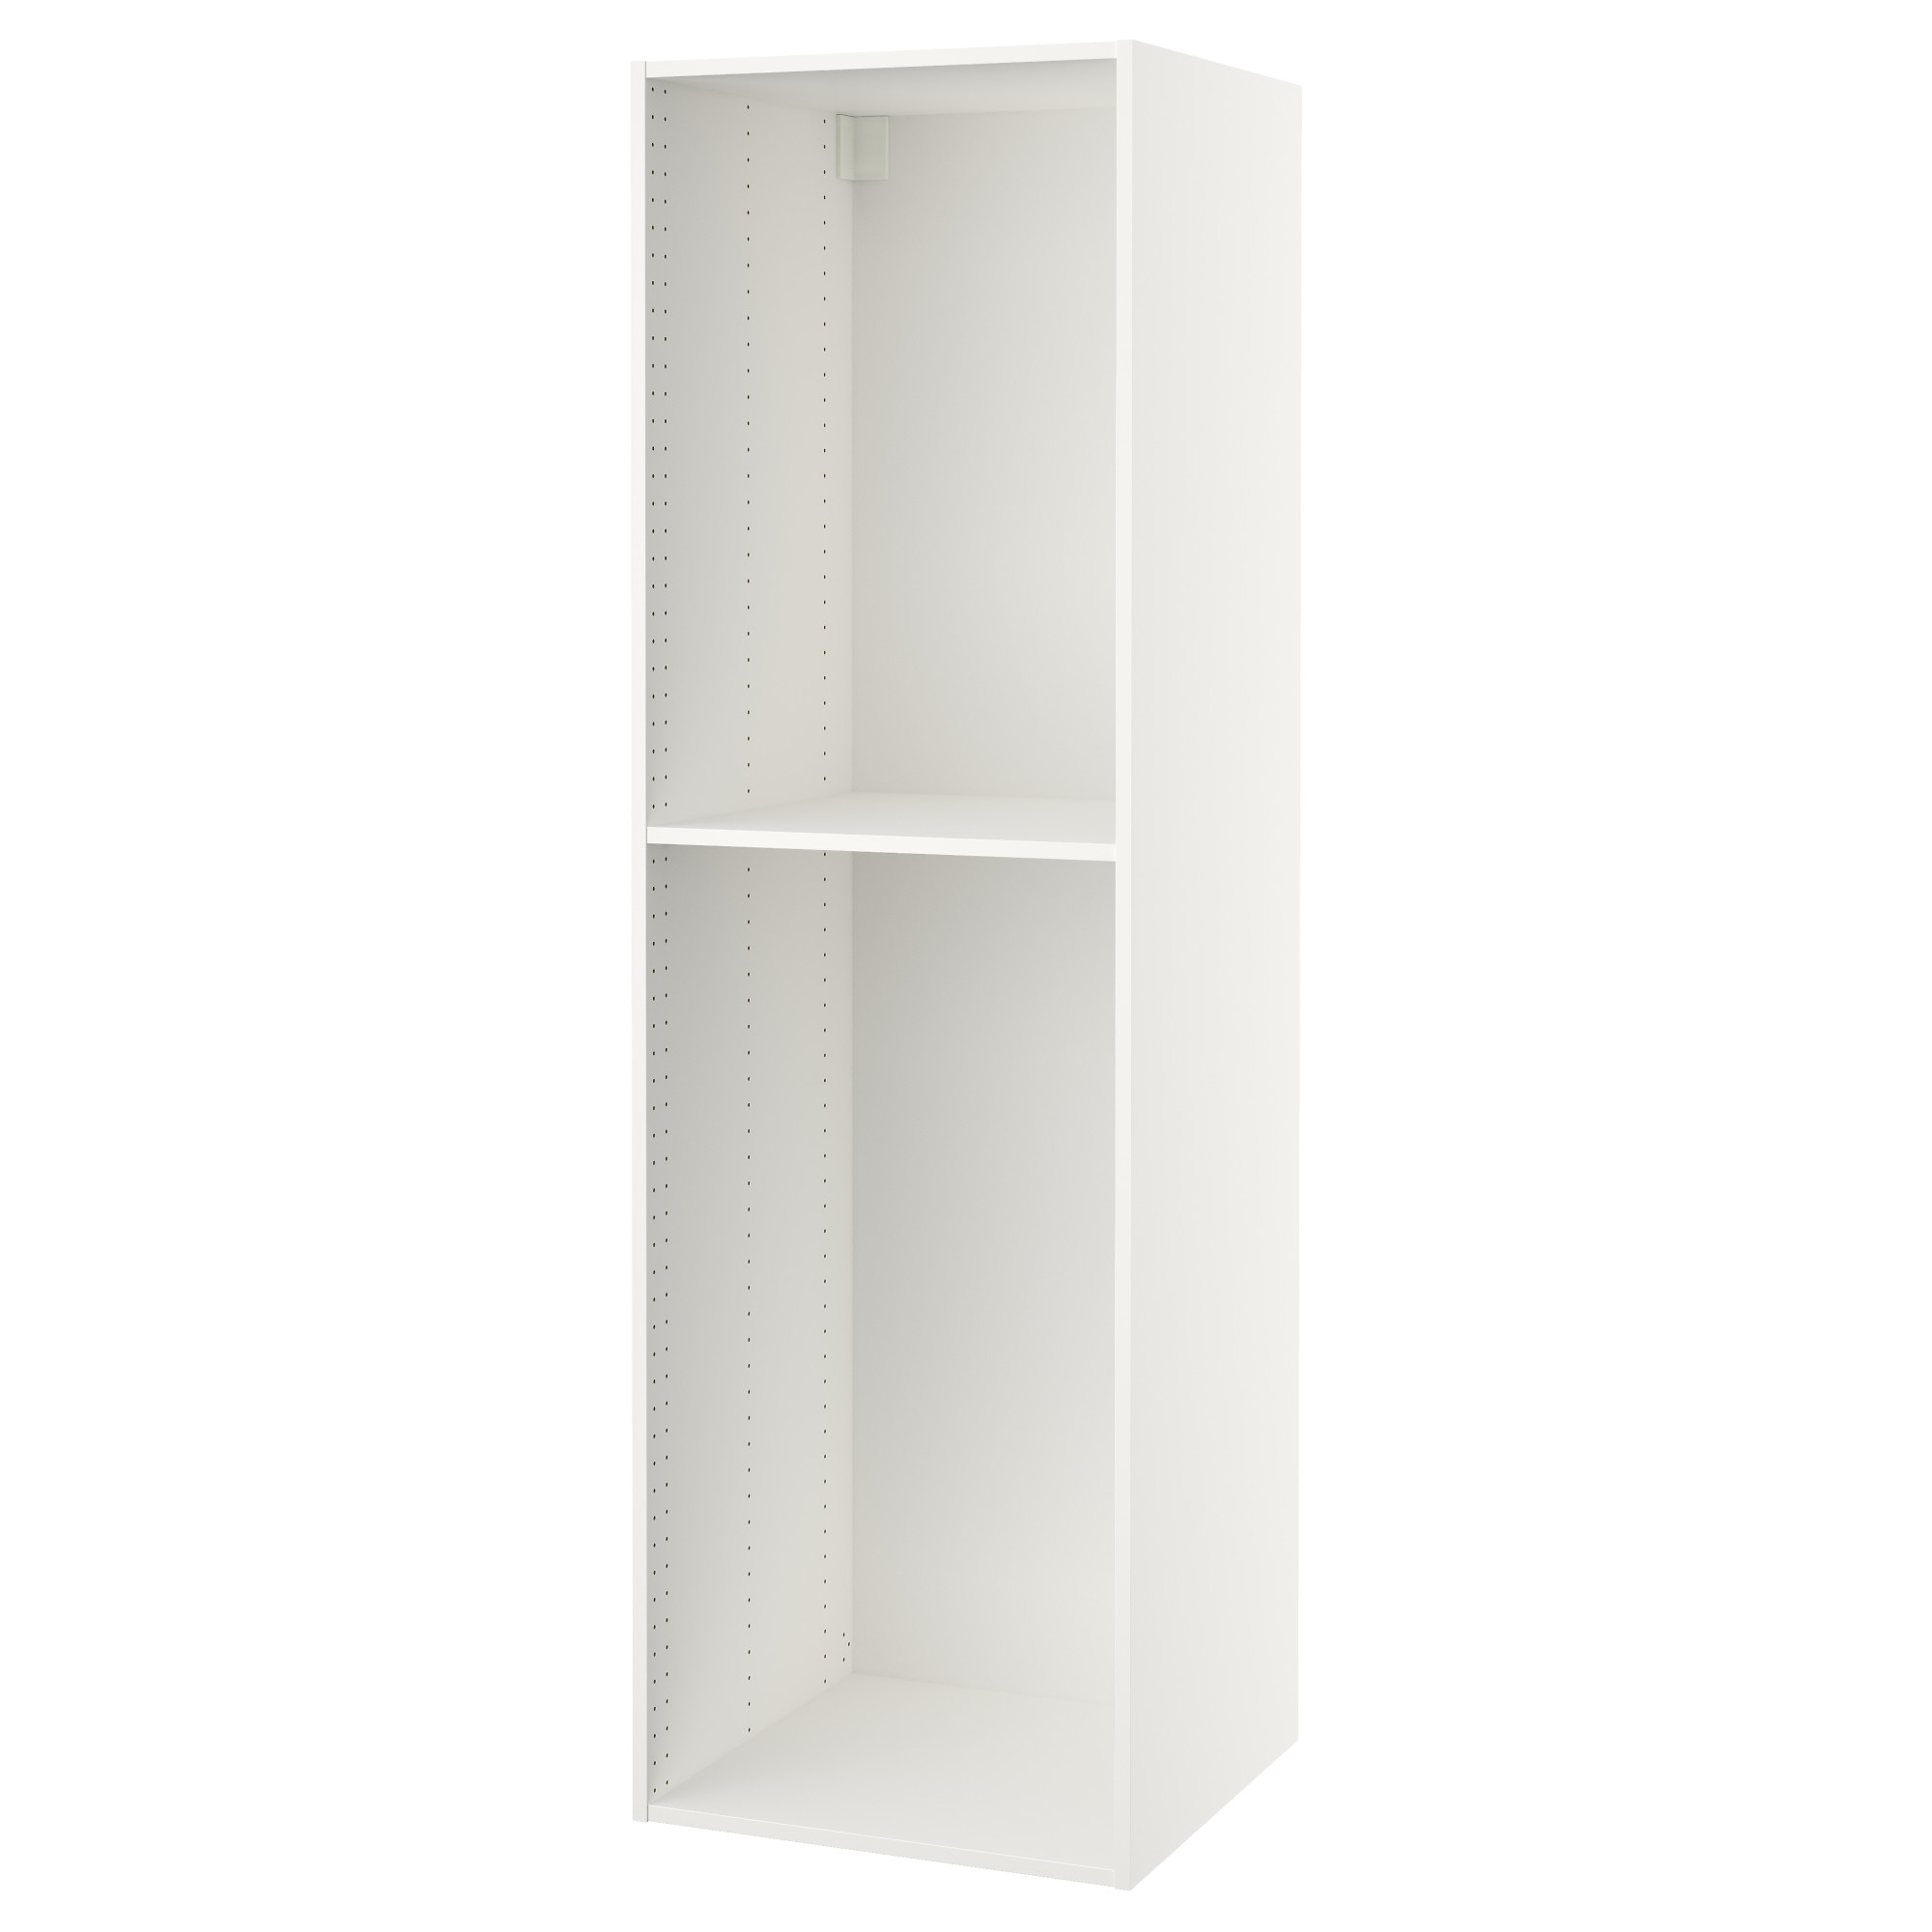 "SEKTION High cabinet frame - white, 17x17x17 "" - IKEA"